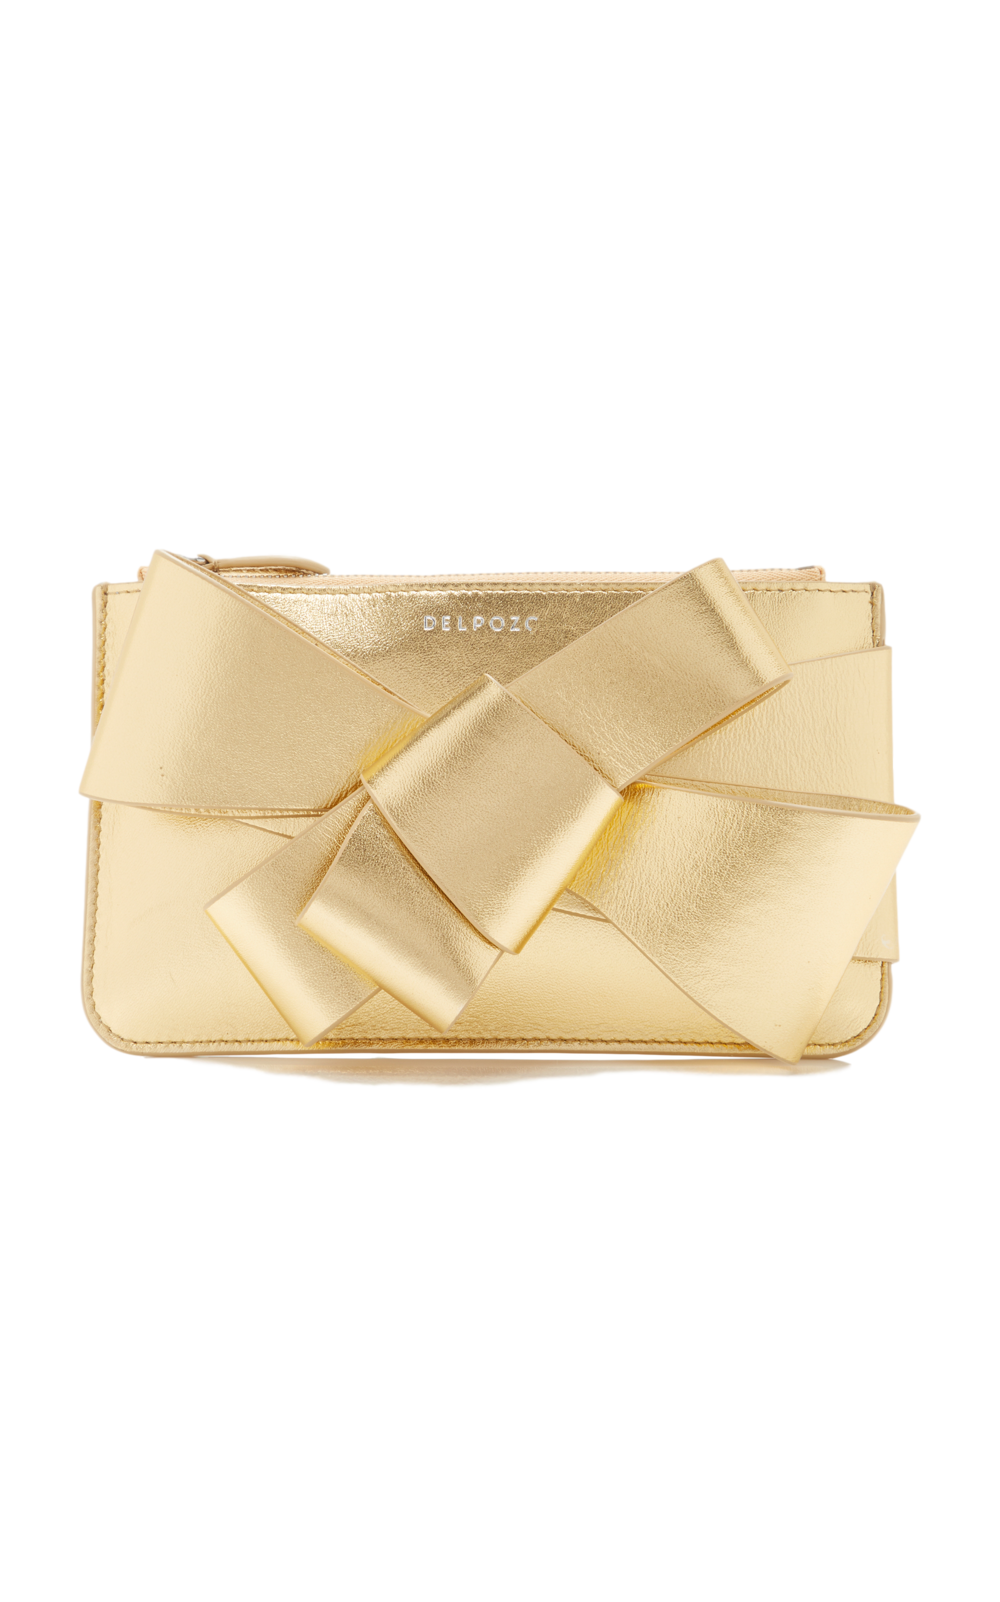 https-__www.modaoperandi.com_delpozo-r18_m-o-exclusive-metallic-mini-bow-clutch_clipped_rev_1.png